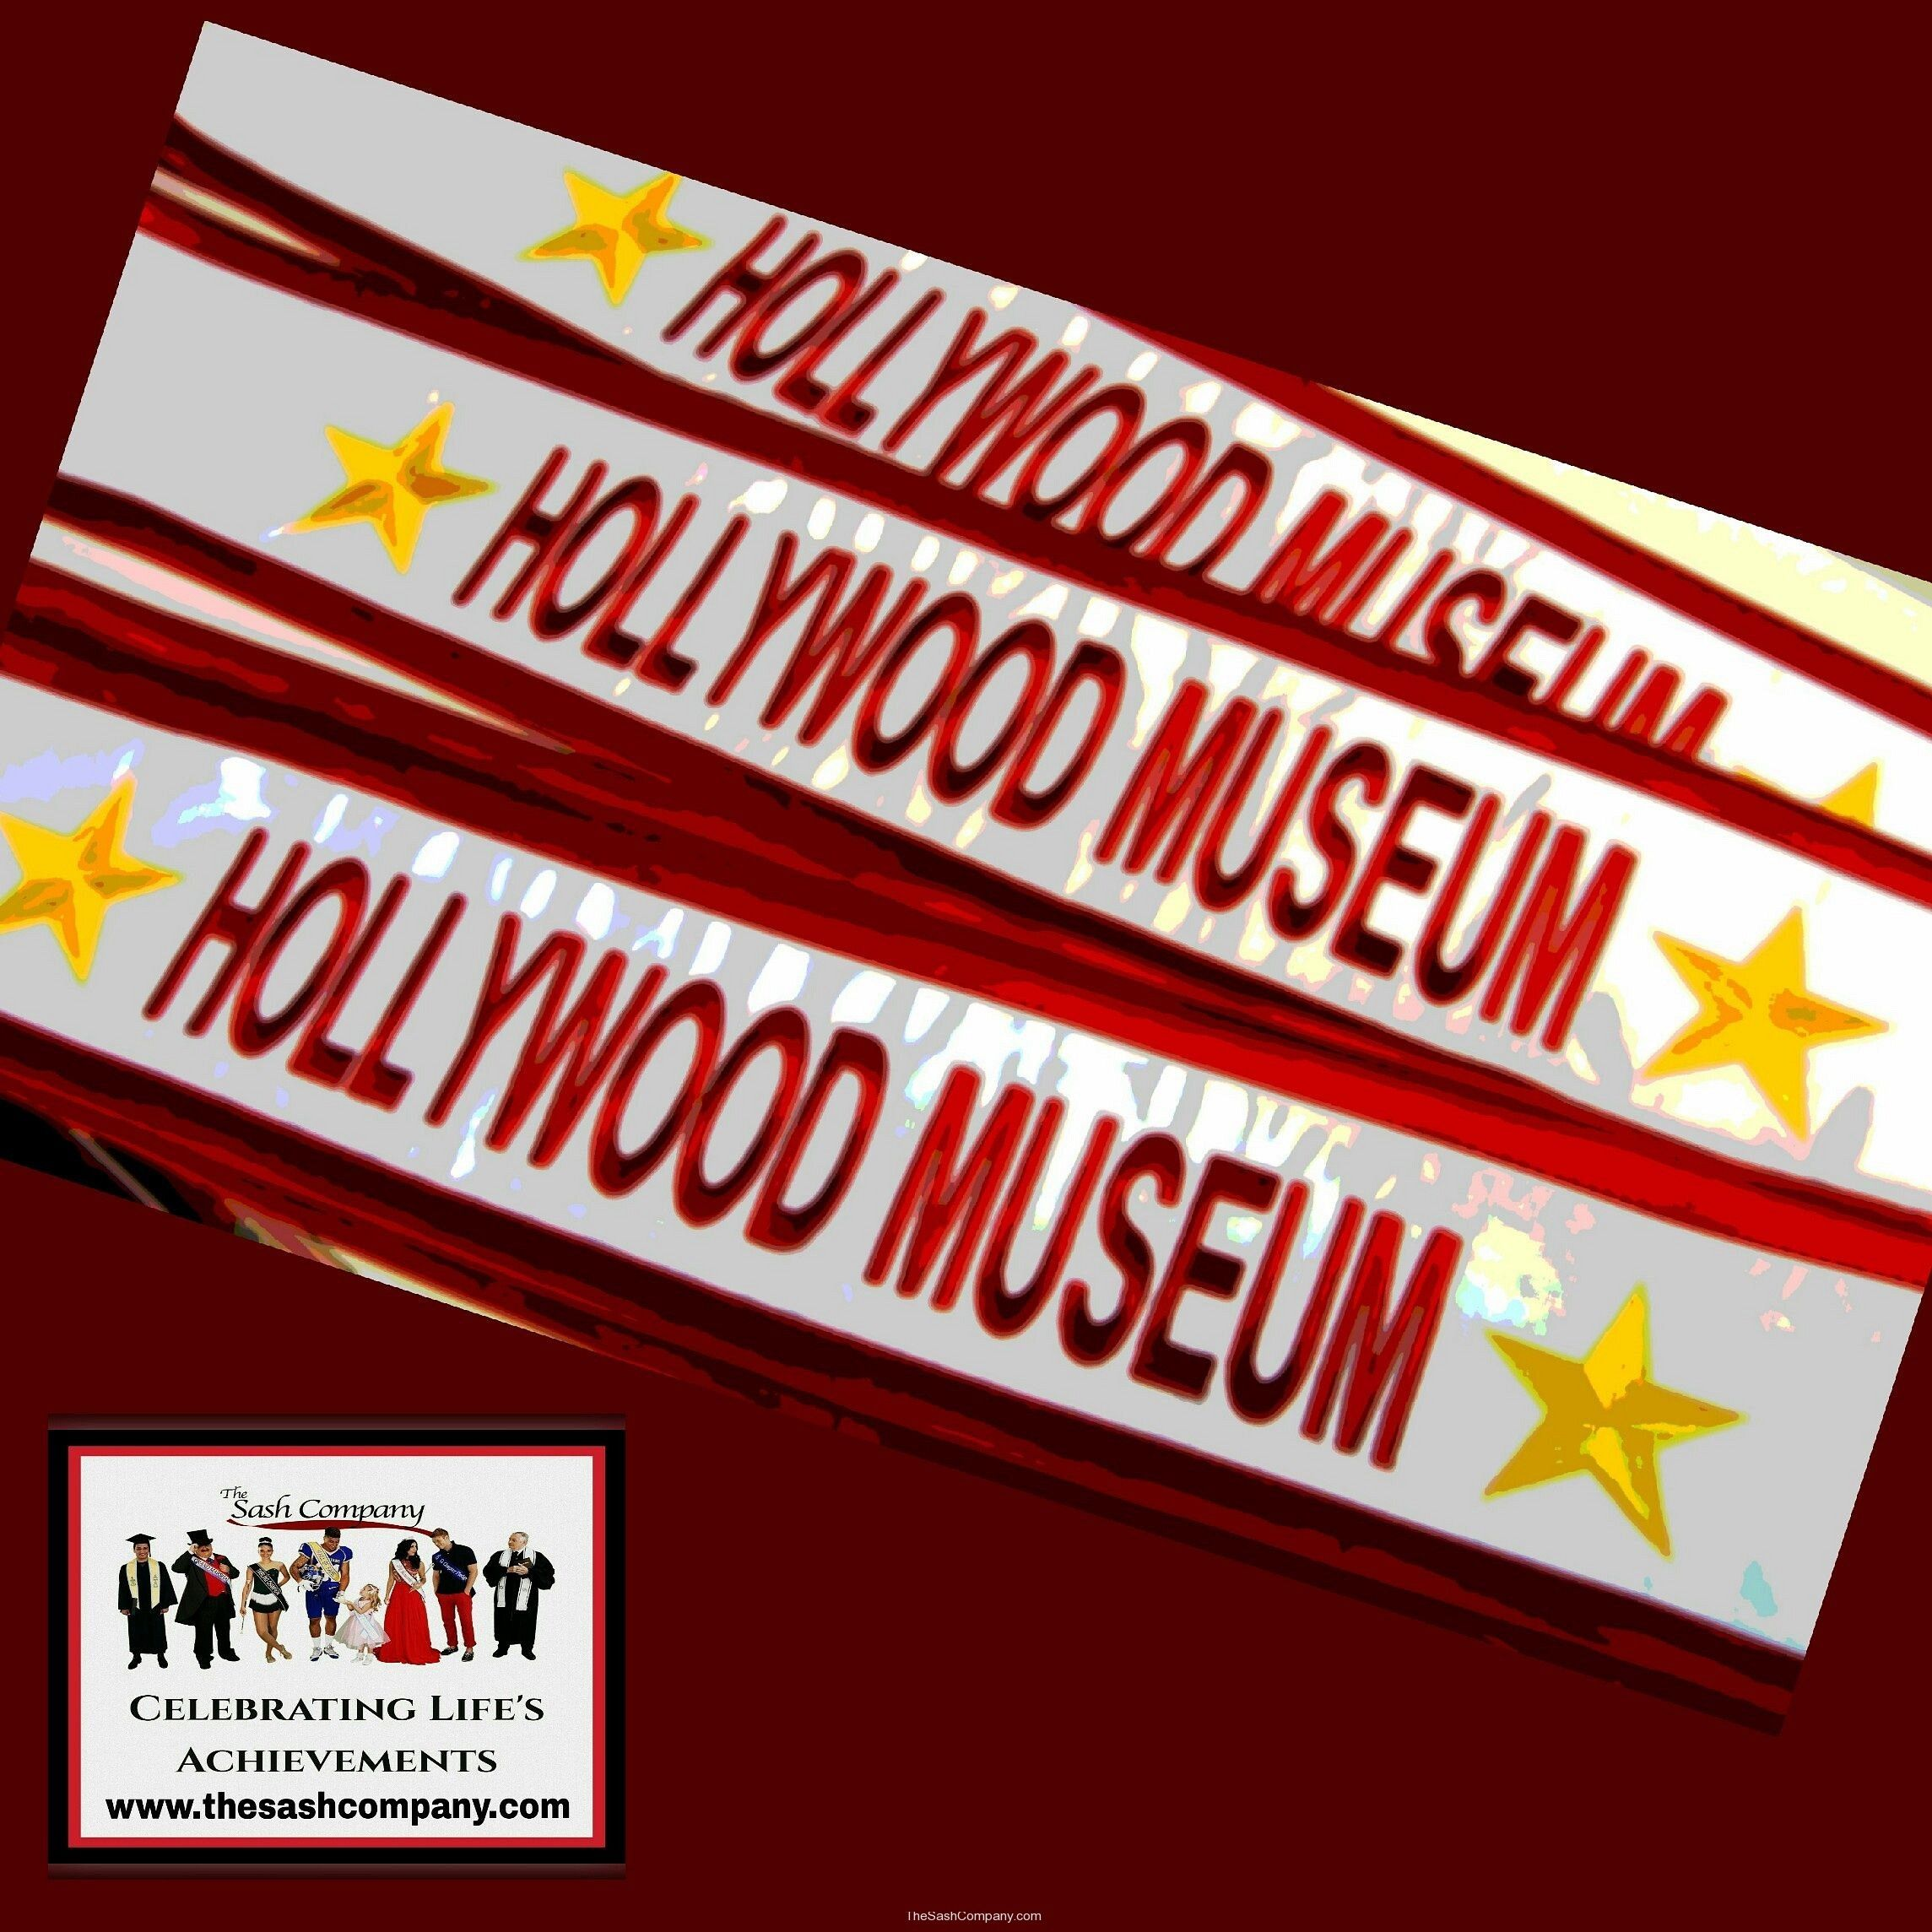 Hollywood Museum Sashes